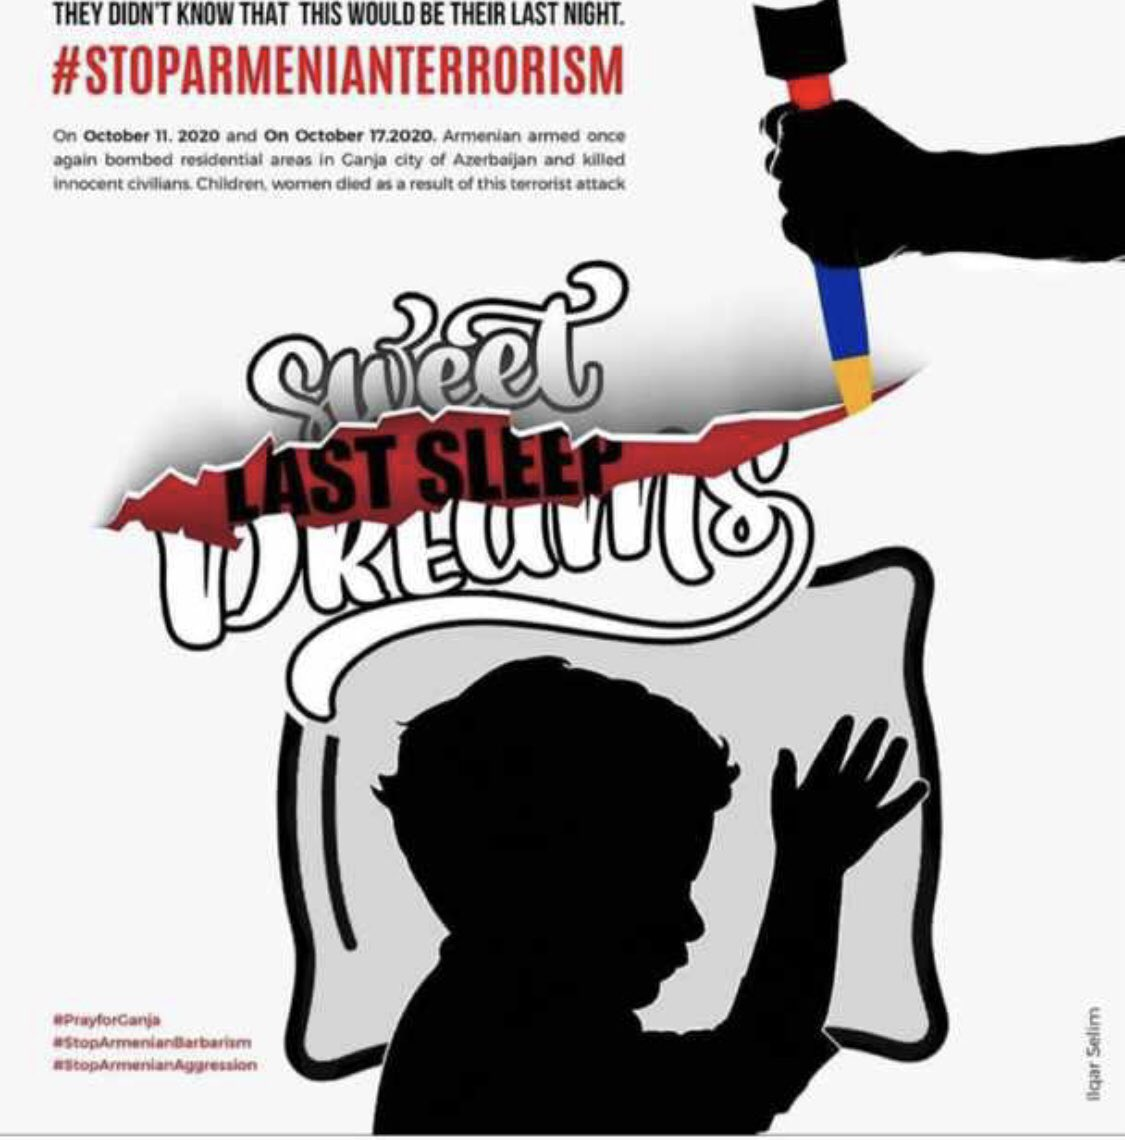 Everyone who supports the @ArmeniaFund has their hands in #Azerbaijan children's blood. YOUR money buys SCUD missiles to attack civilians in #Ganja. #KimKardashian you are an accomplice in the murder.  #StopArmenianAggression  #ArmeniaKillsCivilians   #KarabakhisAzerbaijan https://t.co/9a8YGBJI7W